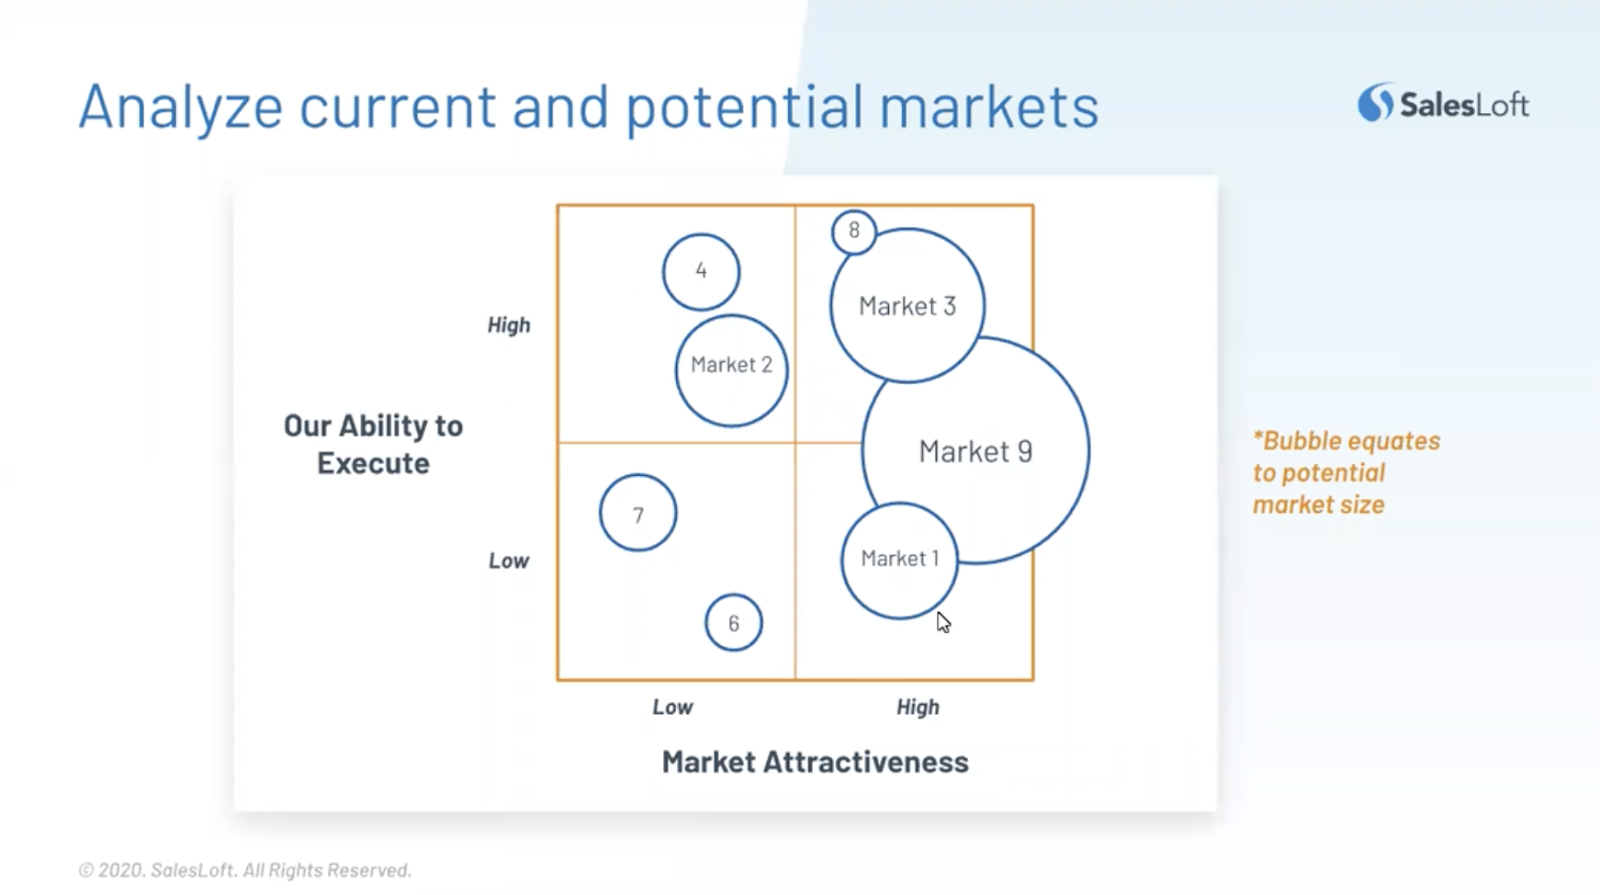 To drive company strategy with product marketing, you need to analyse current and potential markets.